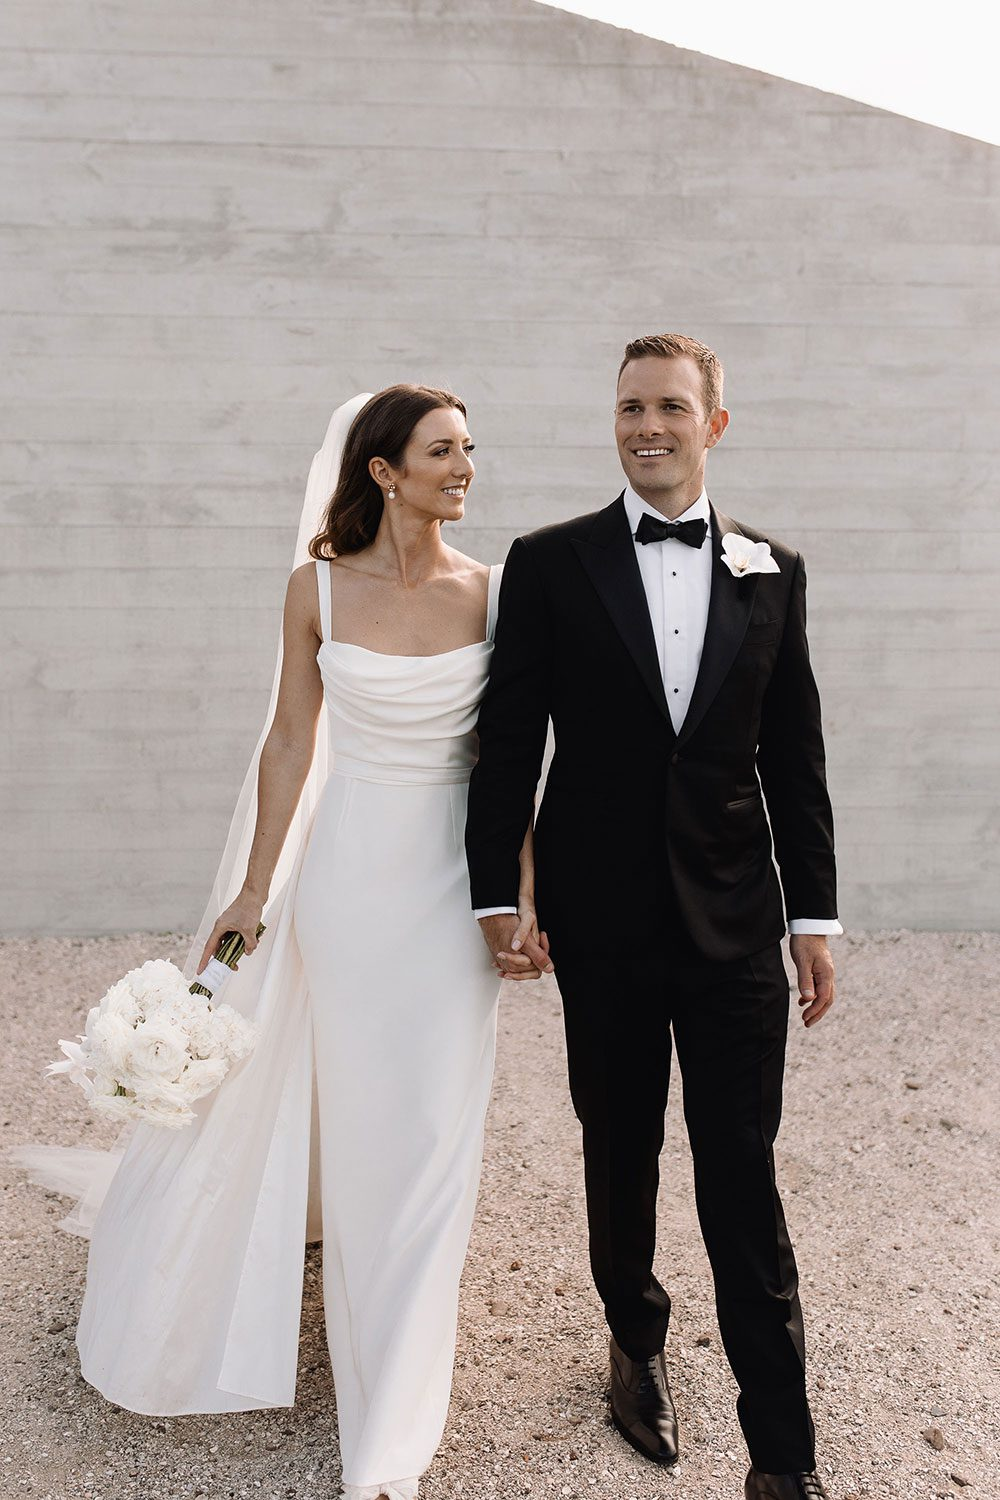 Bride wearing NZ Bespoke Bridal Gown made of silk faile with cowl bodice and detachable overskirt by Vinka Designs - in front of wall walking with groom